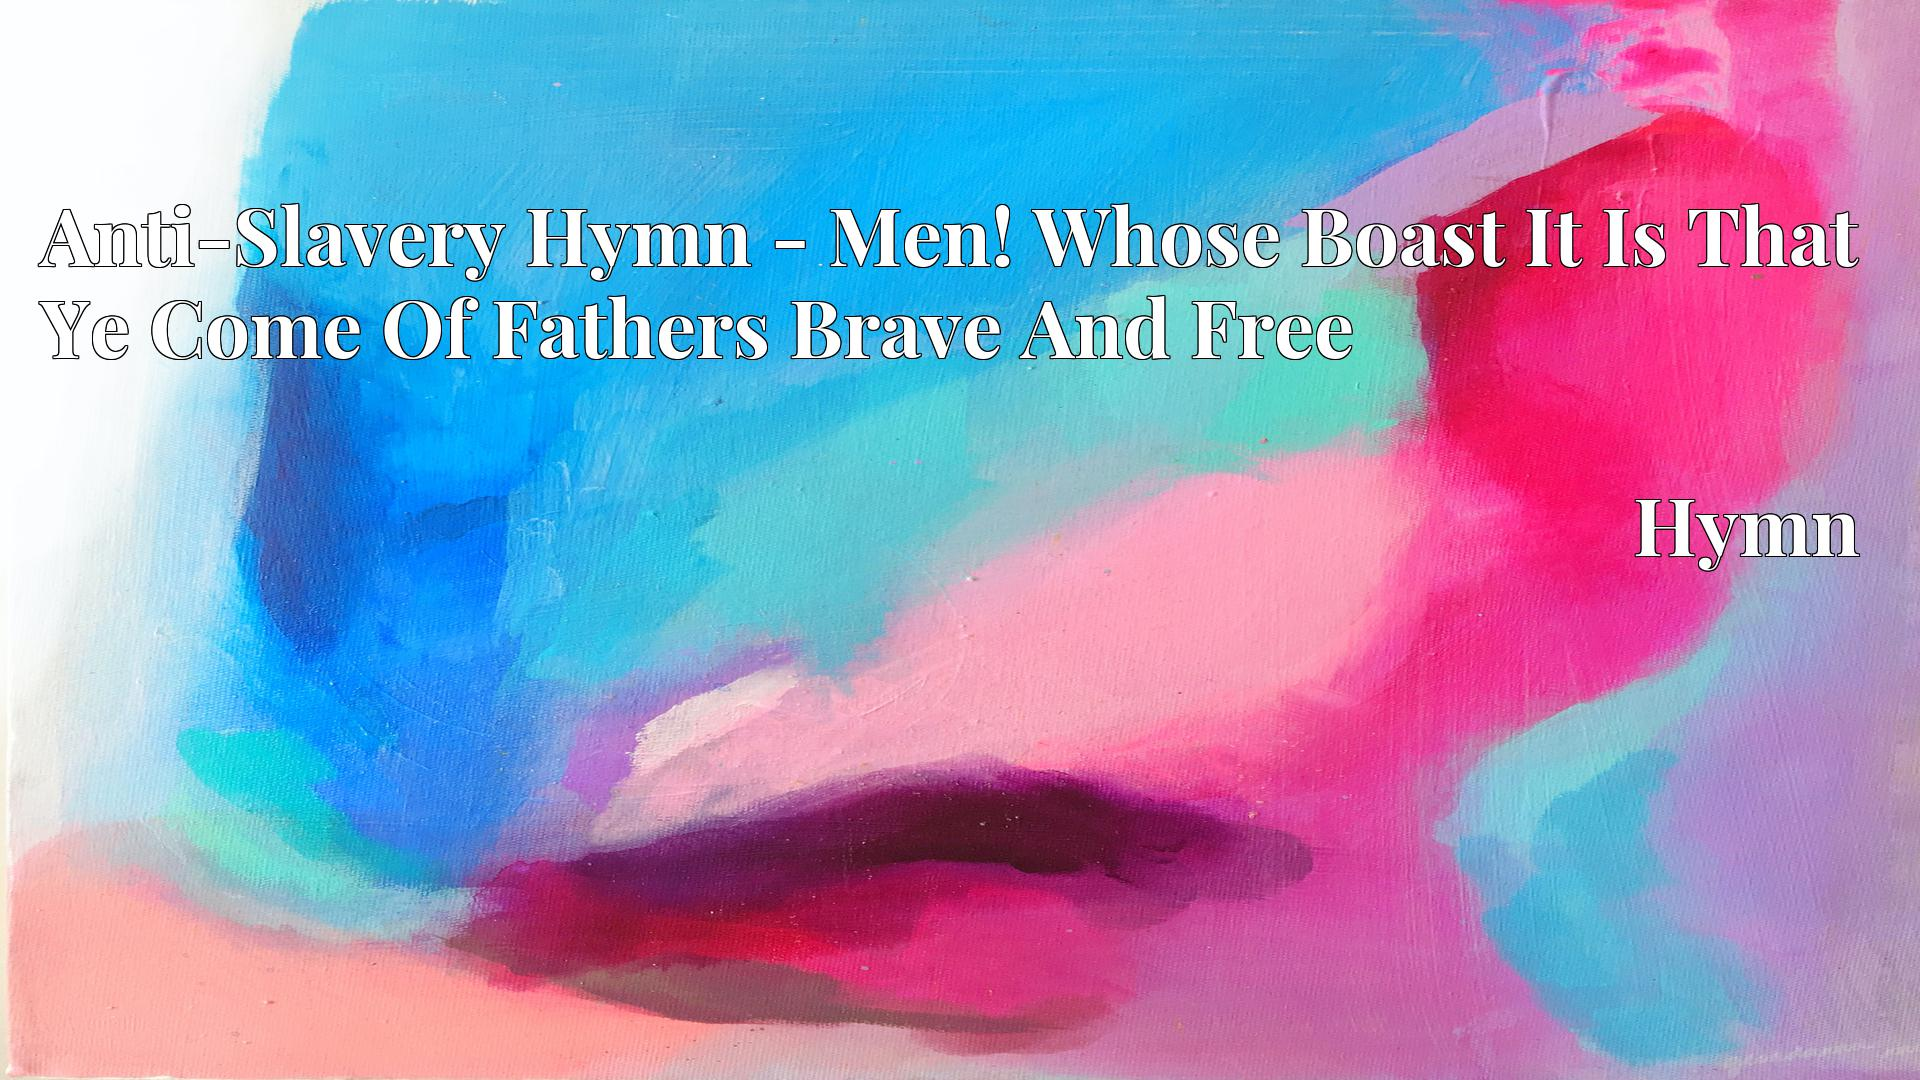 Anti-Slavery Hymn - Men! Whose Boast It Is That Ye Come Of Fathers Brave And Free - Hymn